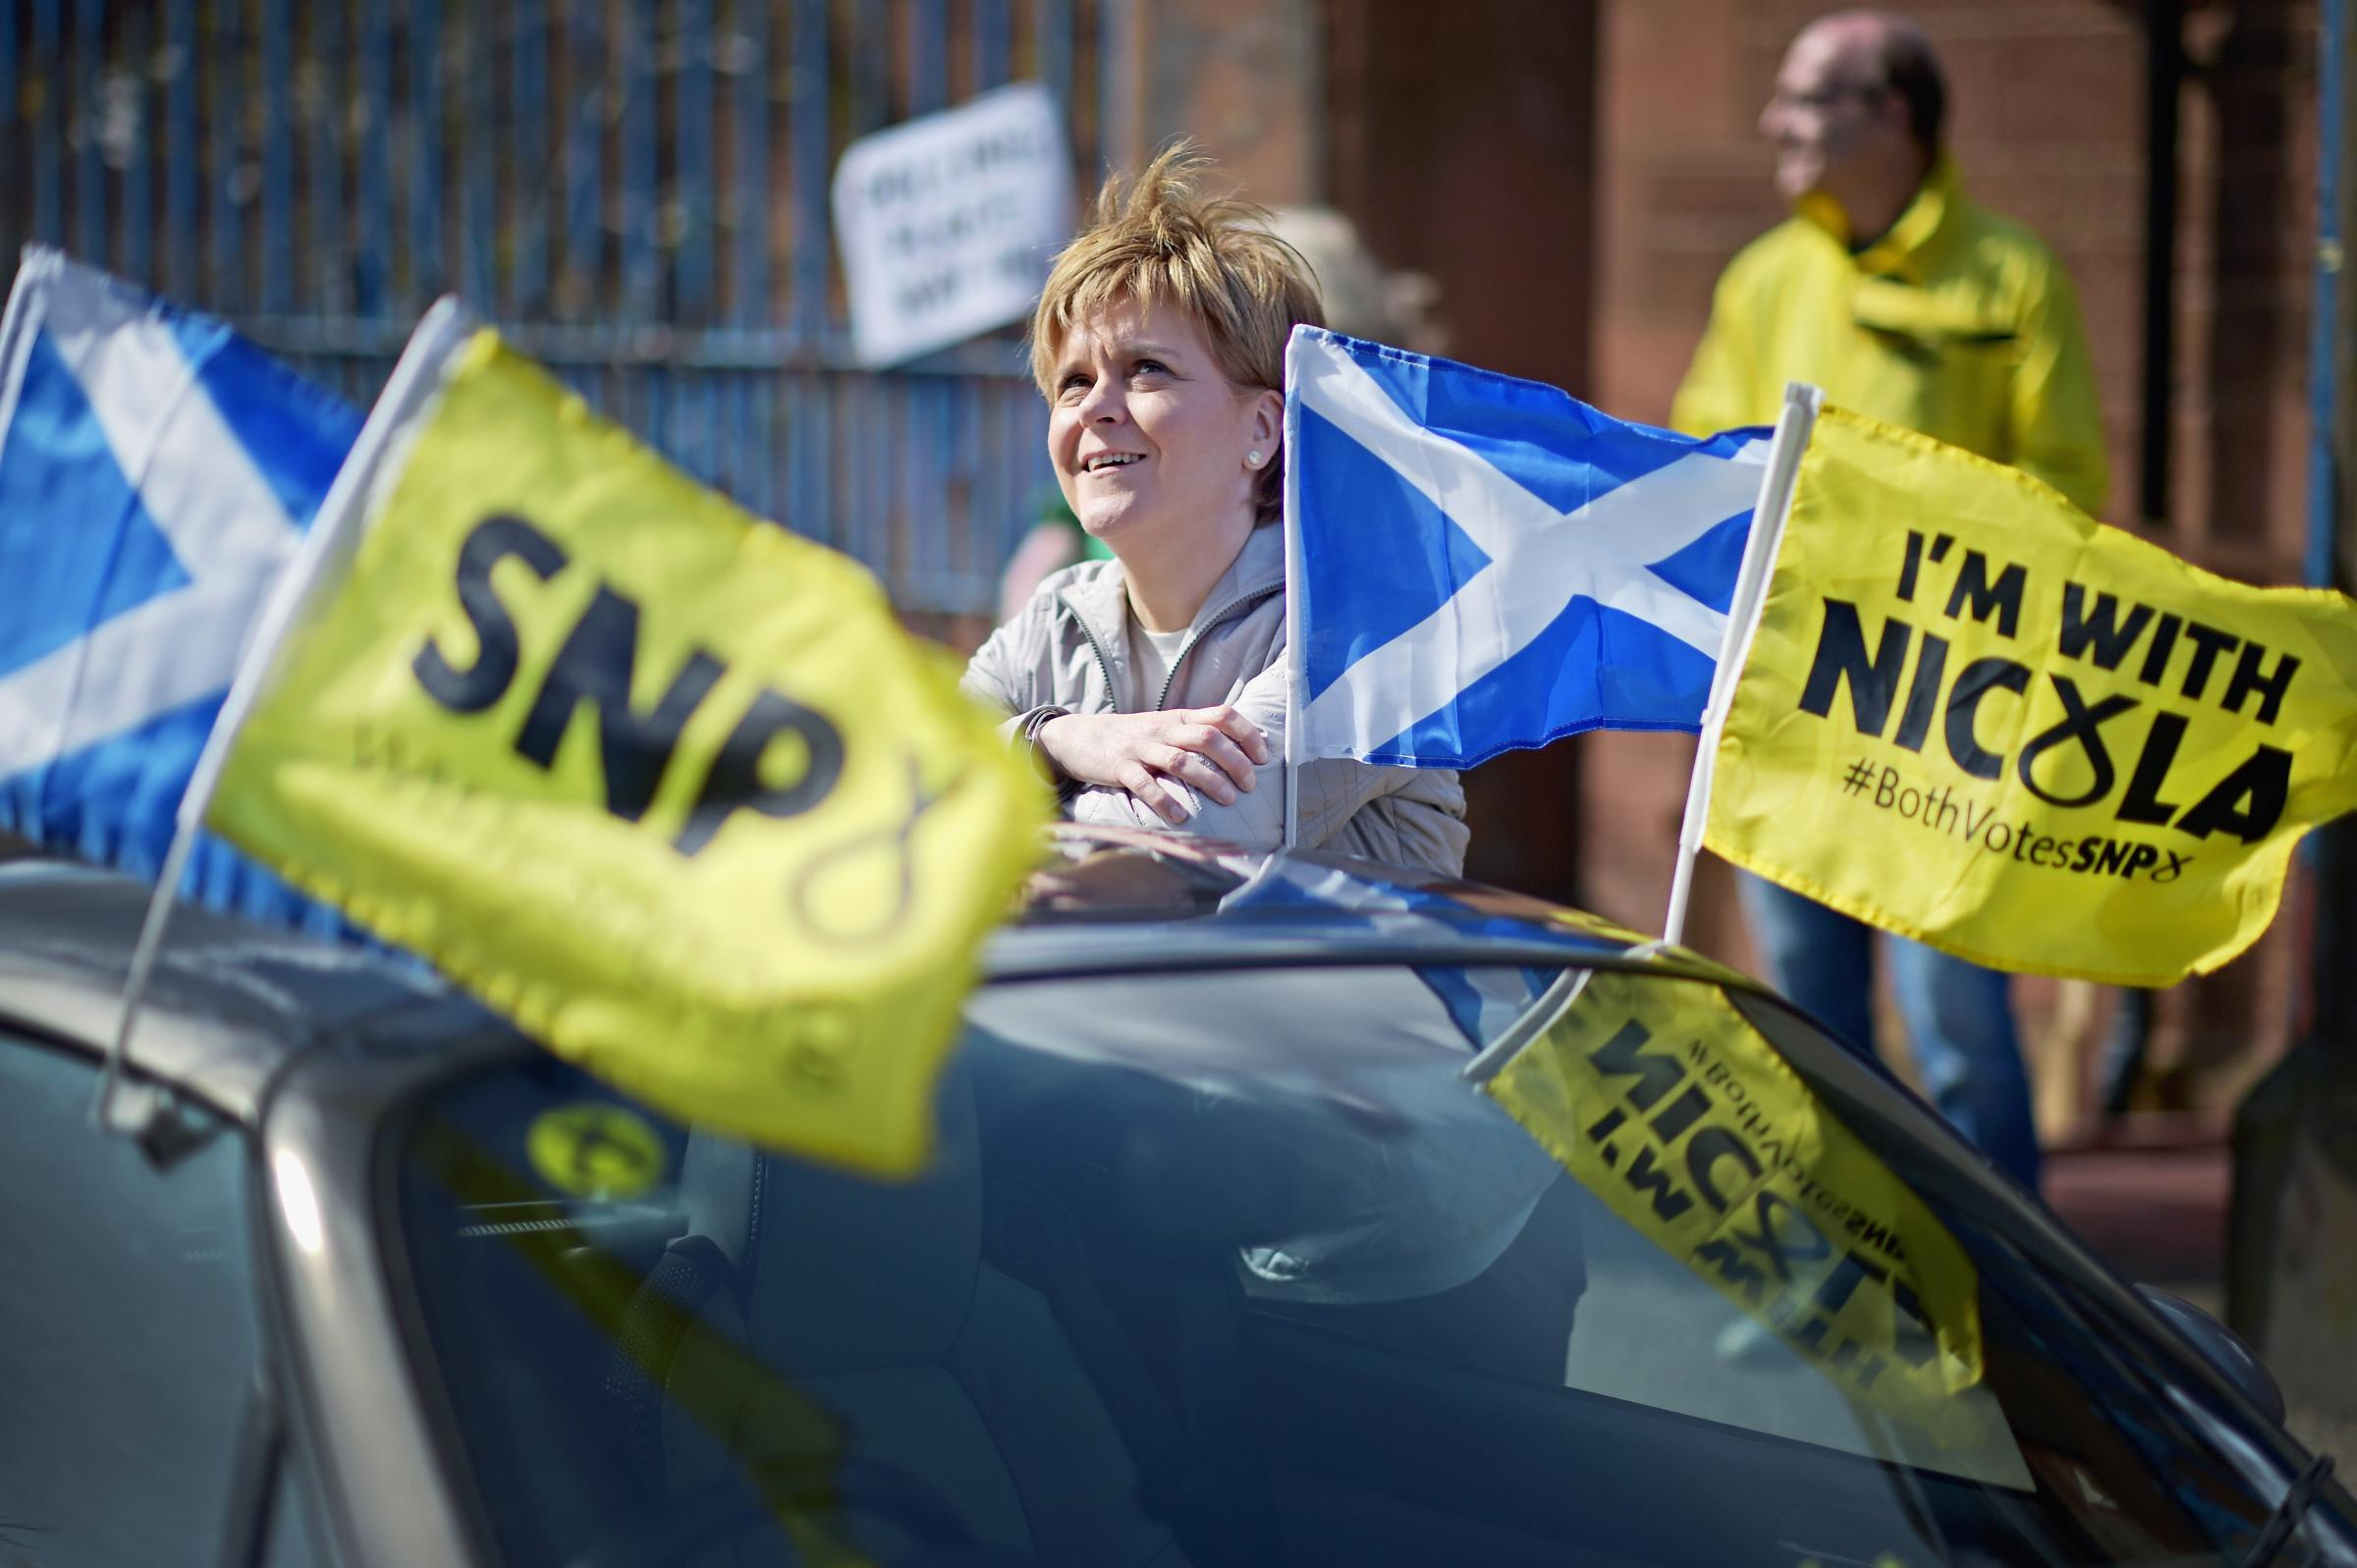 London journalist told to 'calm down' over hysterical indyref claims